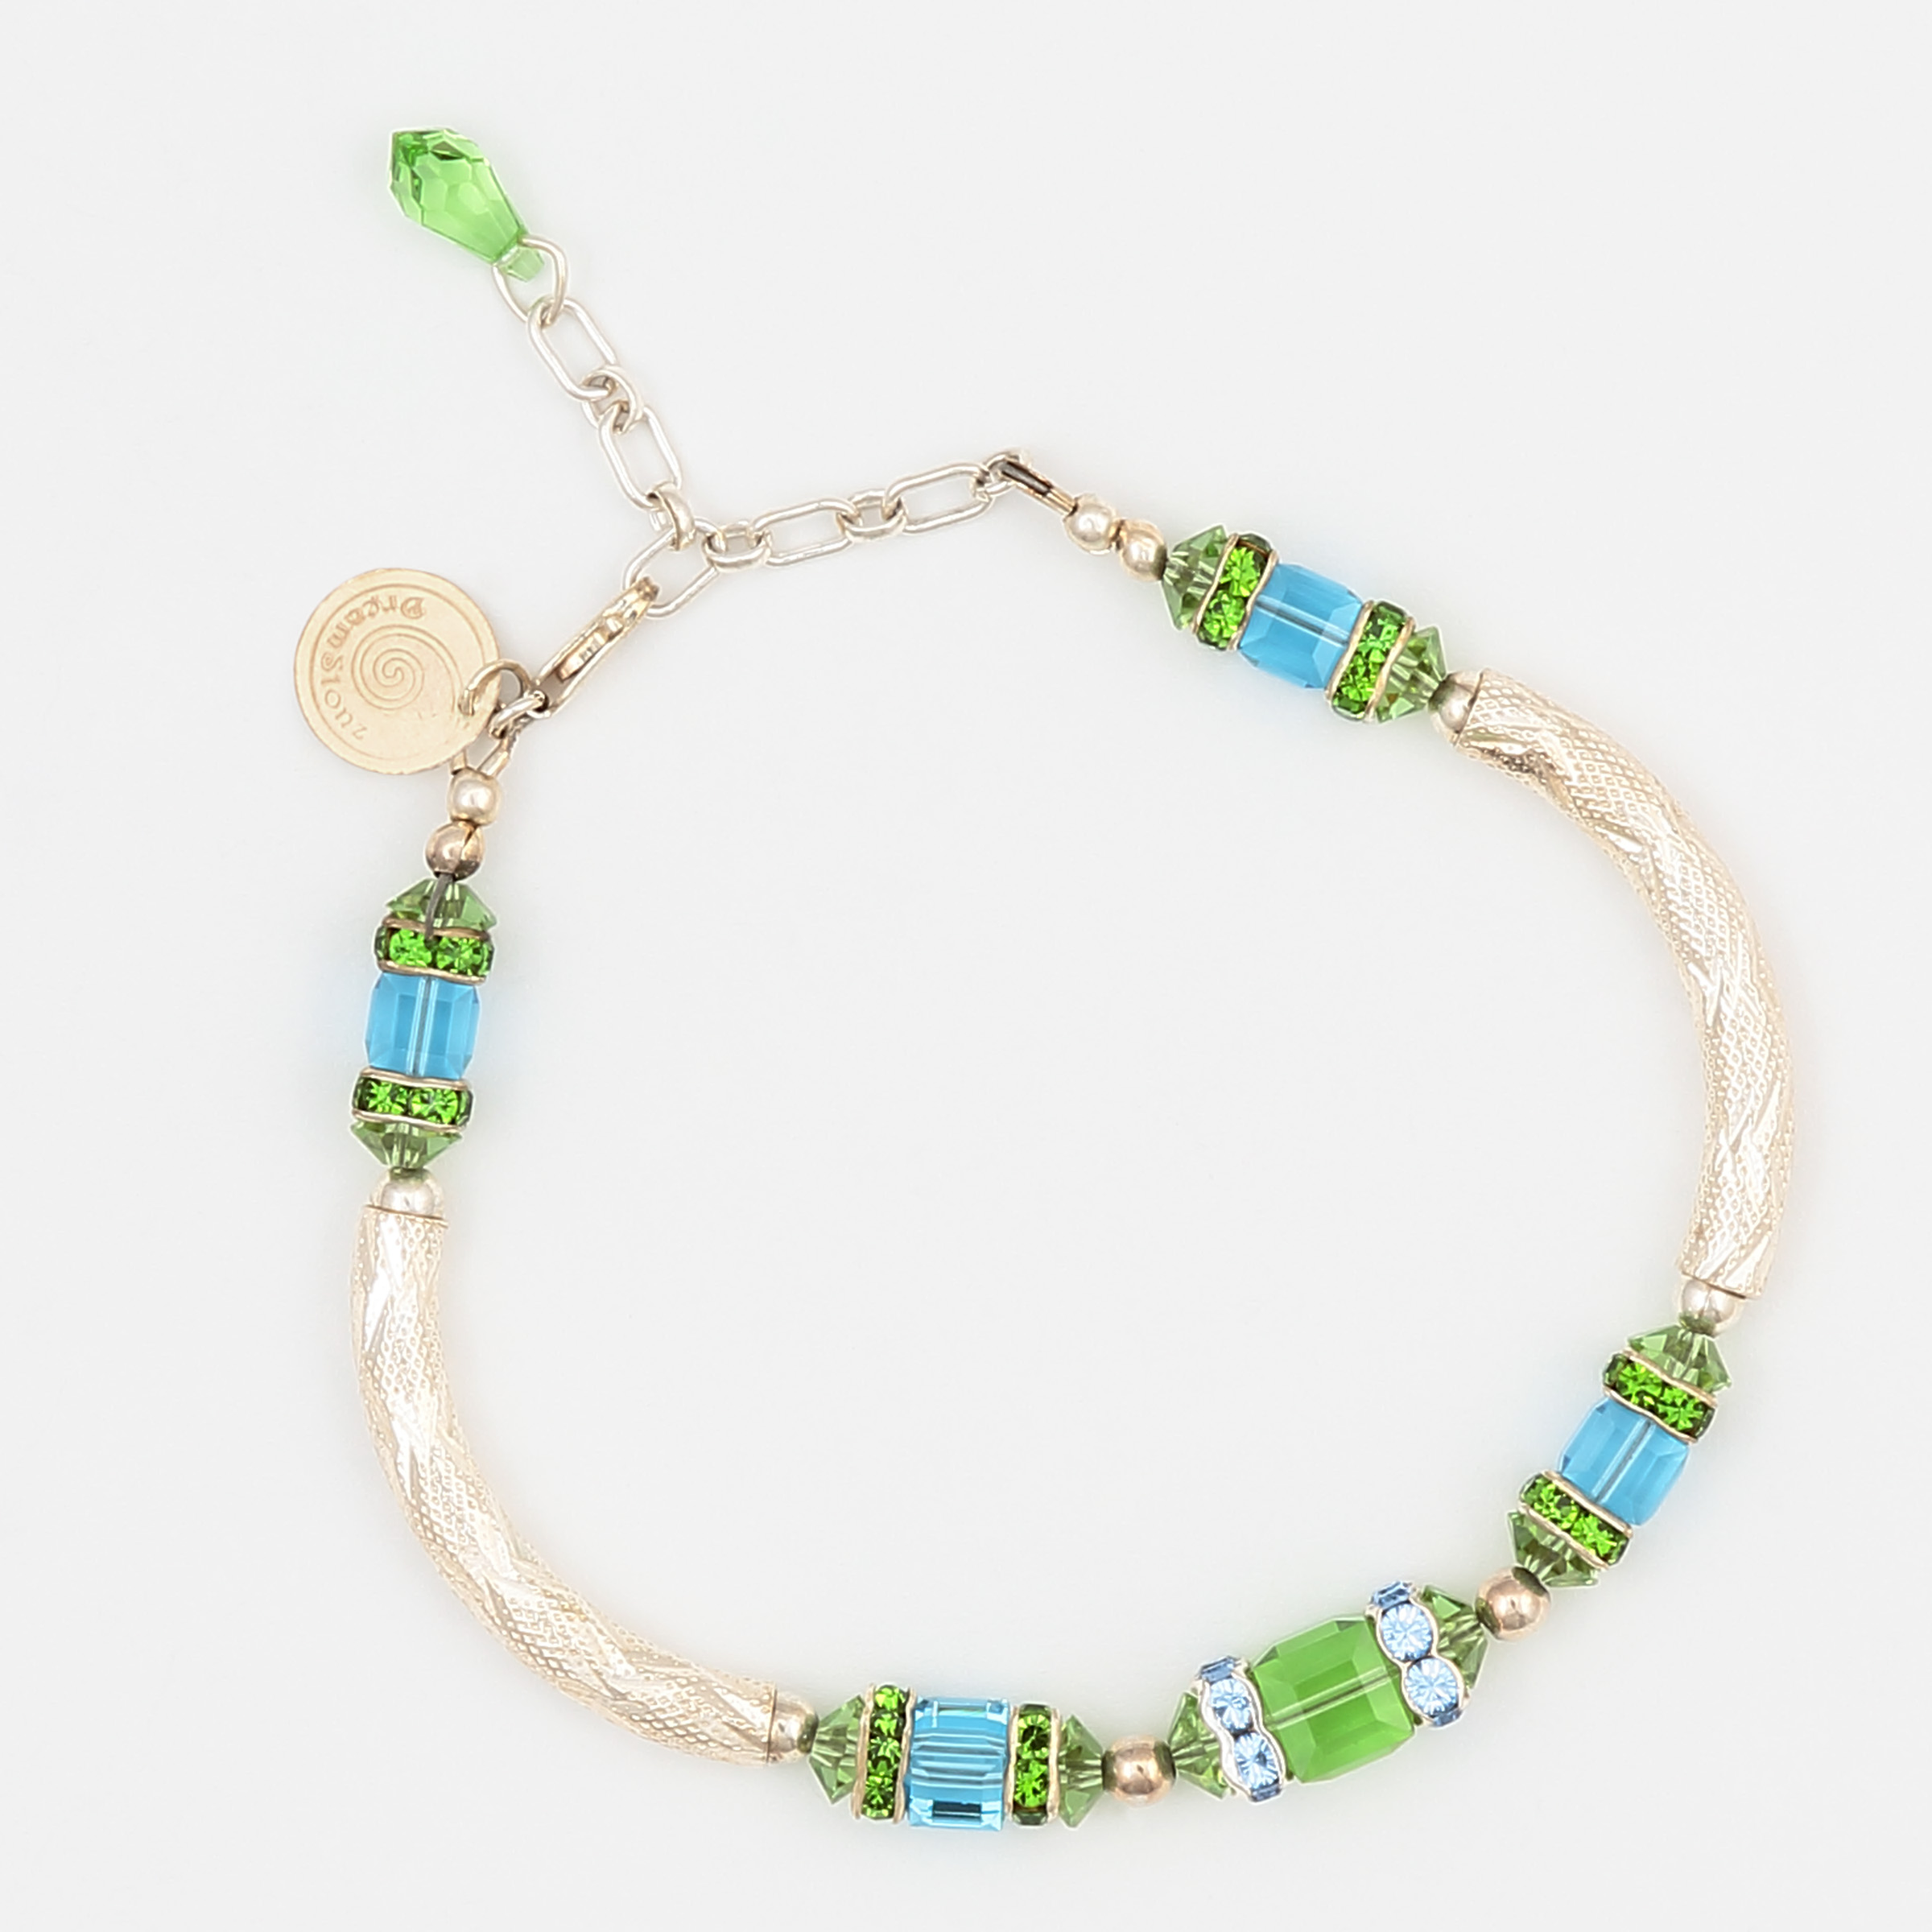 Parenthesis in Sea Colors Bracelet – Silver & Swarovski Crystals